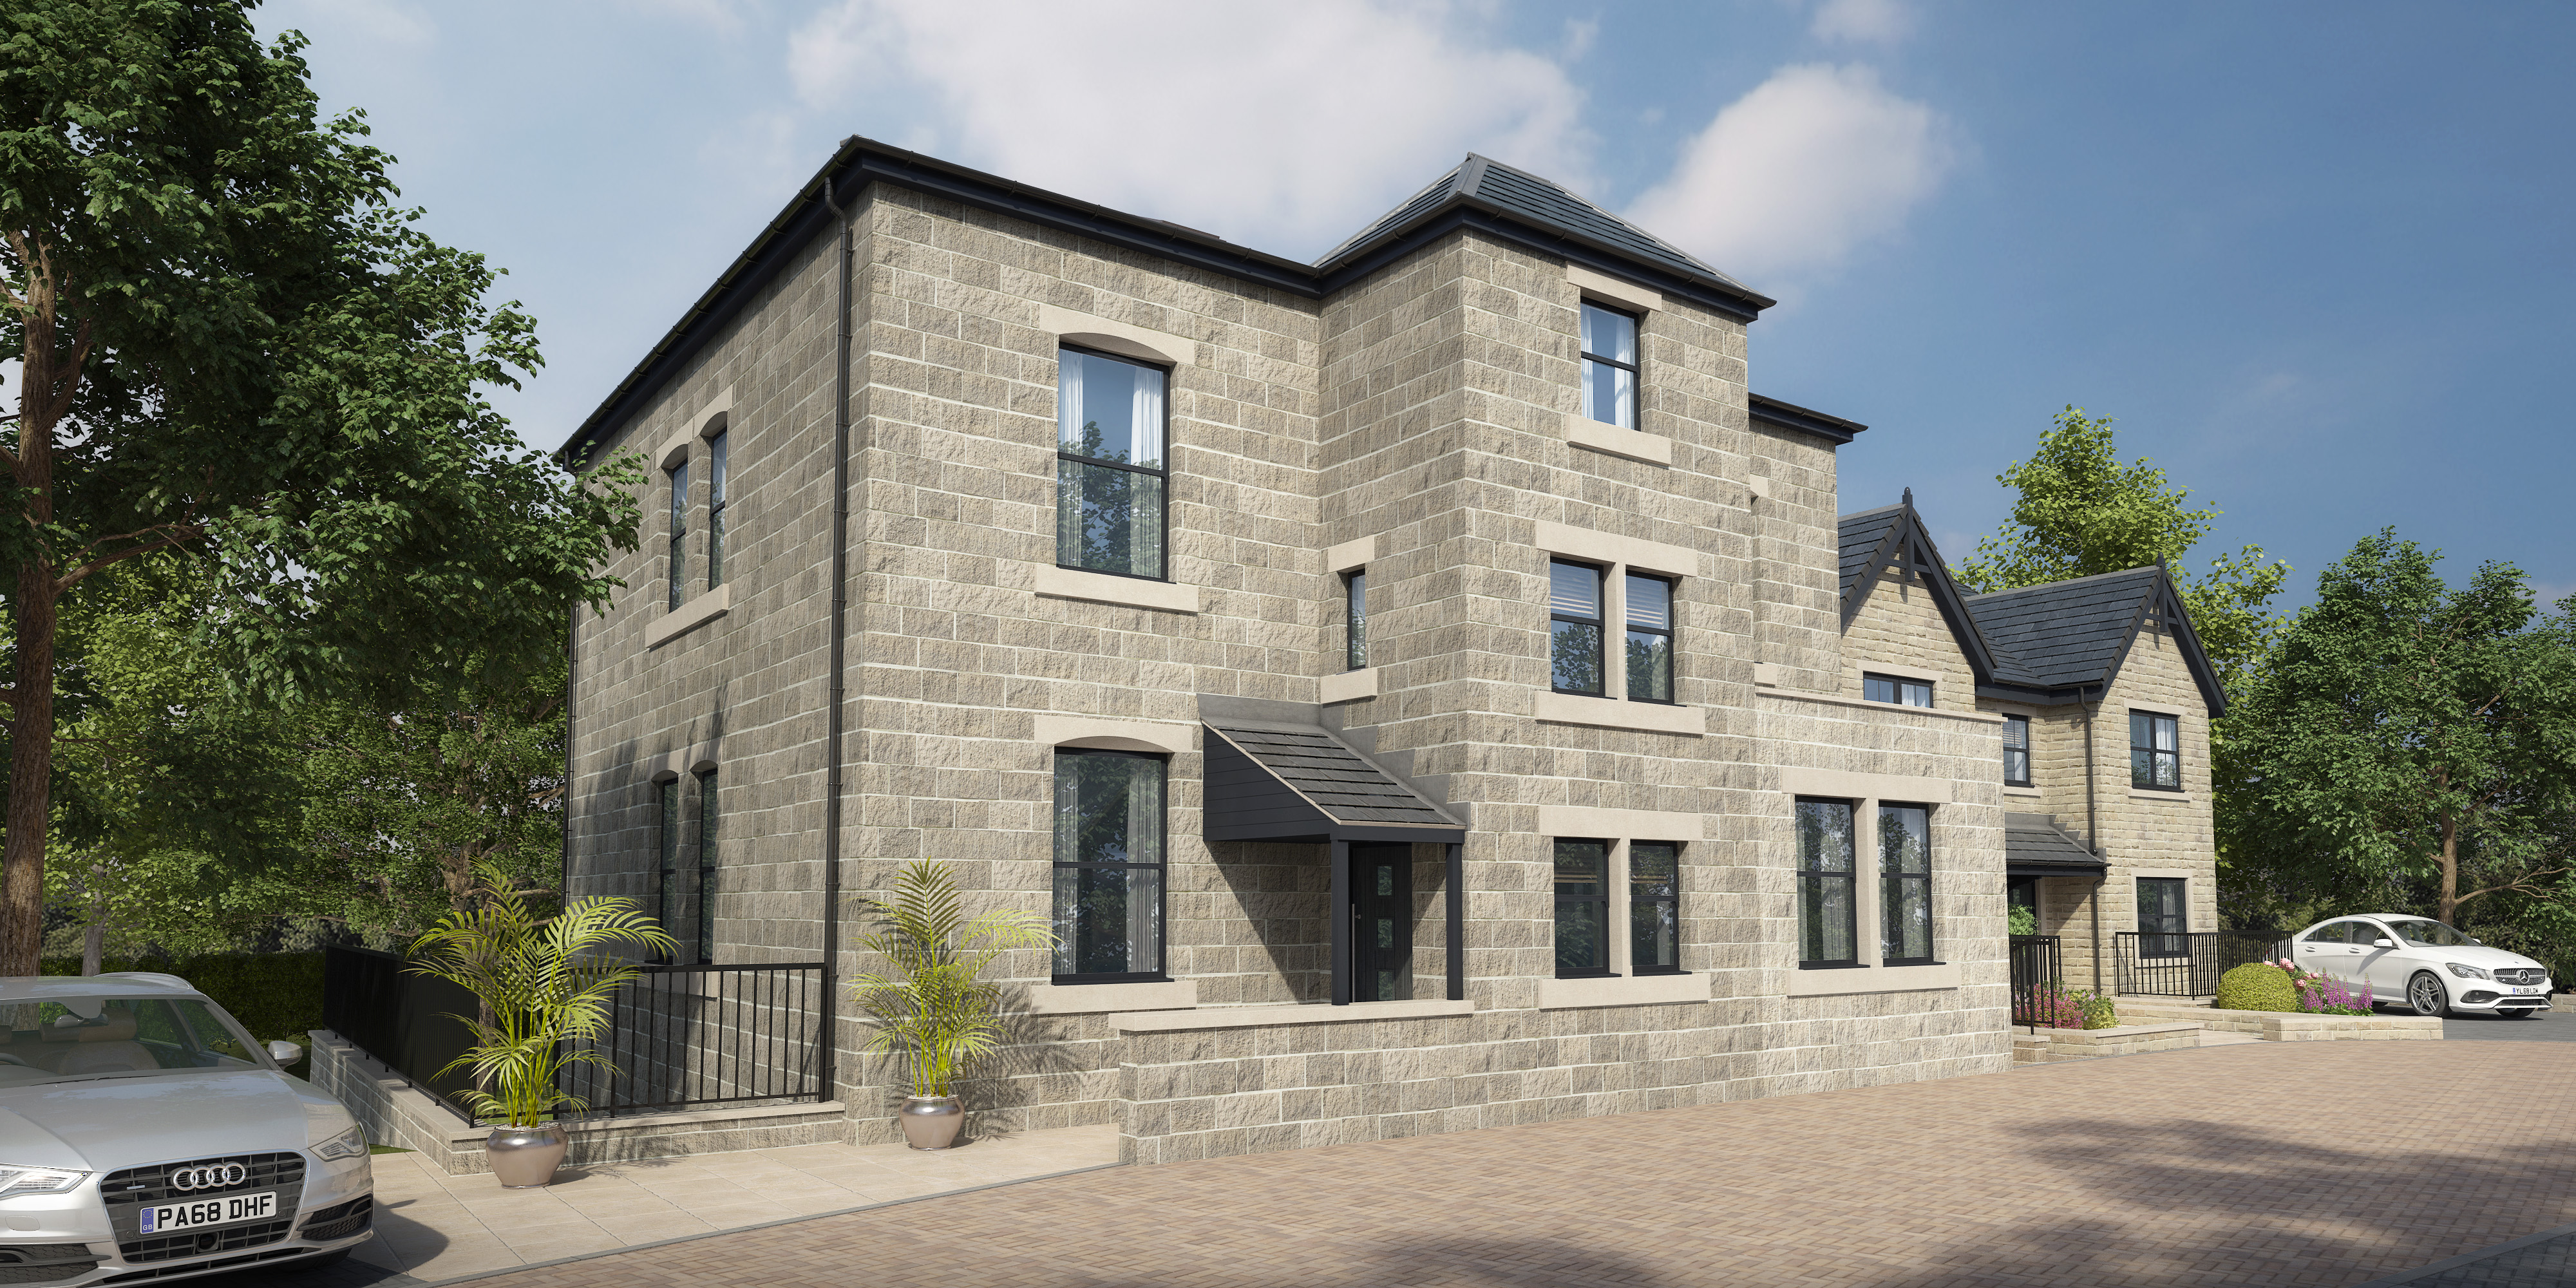 New Build Homes For Sale In Horsforth, Leeds; Aubretia View